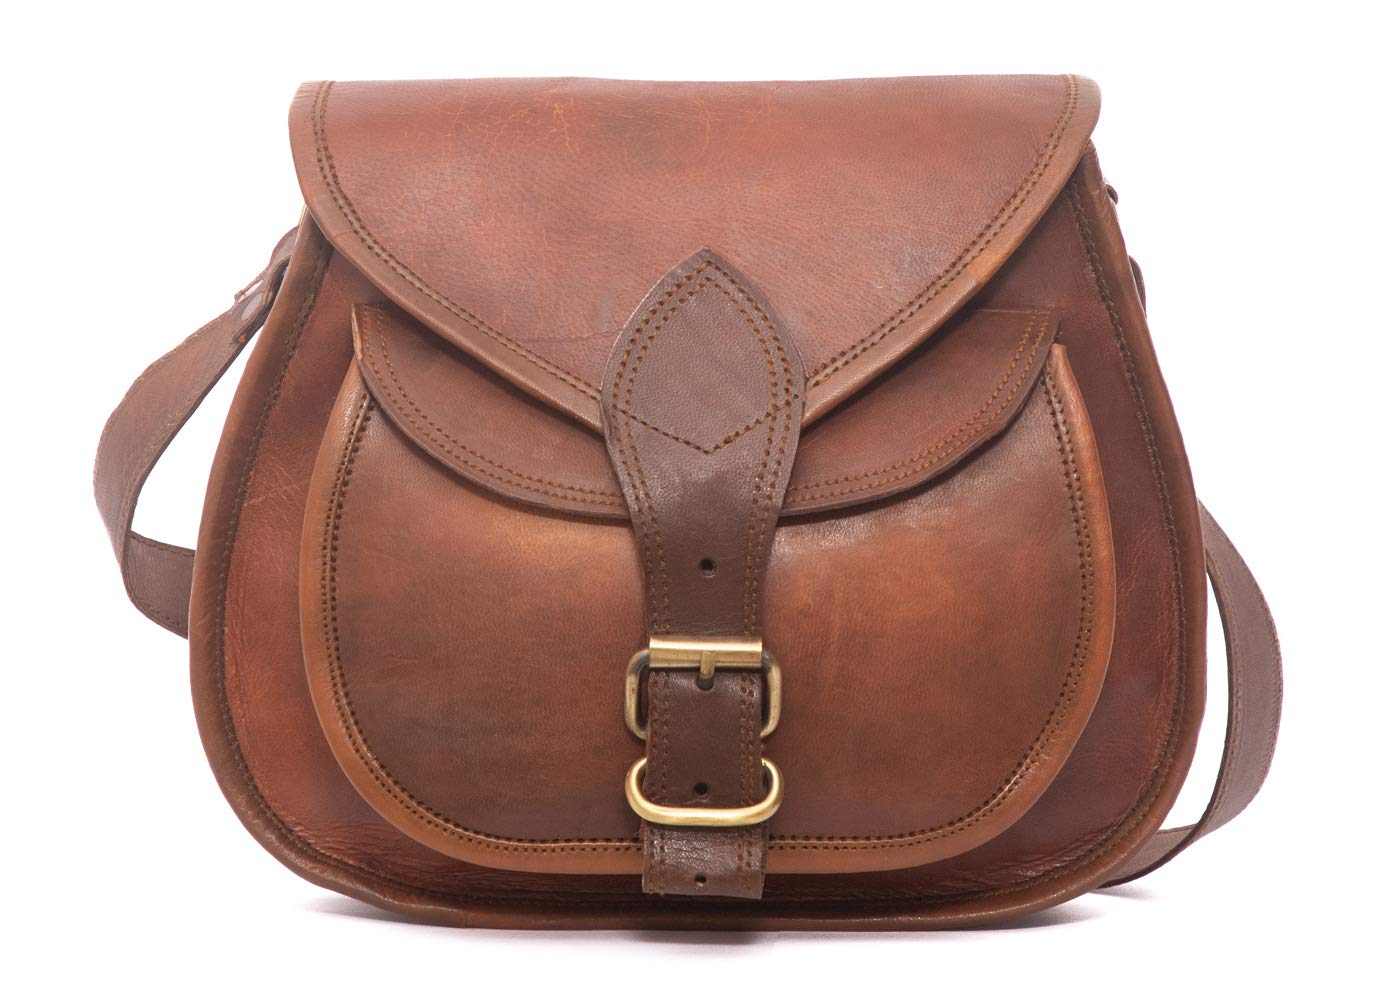 cecde2d337f Women s Handmade Leather Saddlebag Purse - Smart Green Canvas Lining and  Reinforced Hand-Stitching - 3 Compartments